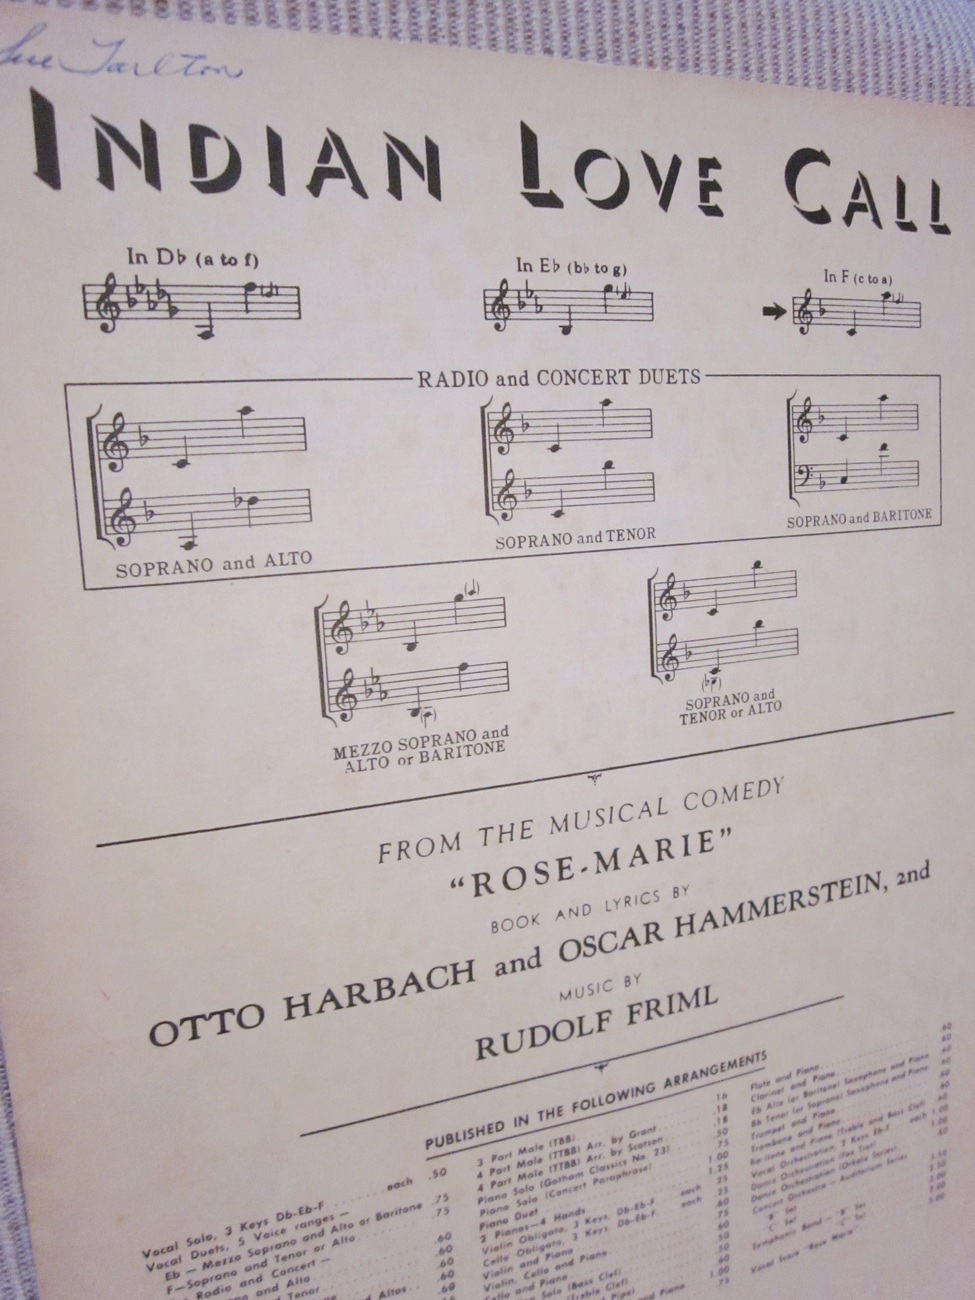 Vintage Sheet Music Indian Love Call 1924 by Harbach, Hammerstein, Friml  lot 1